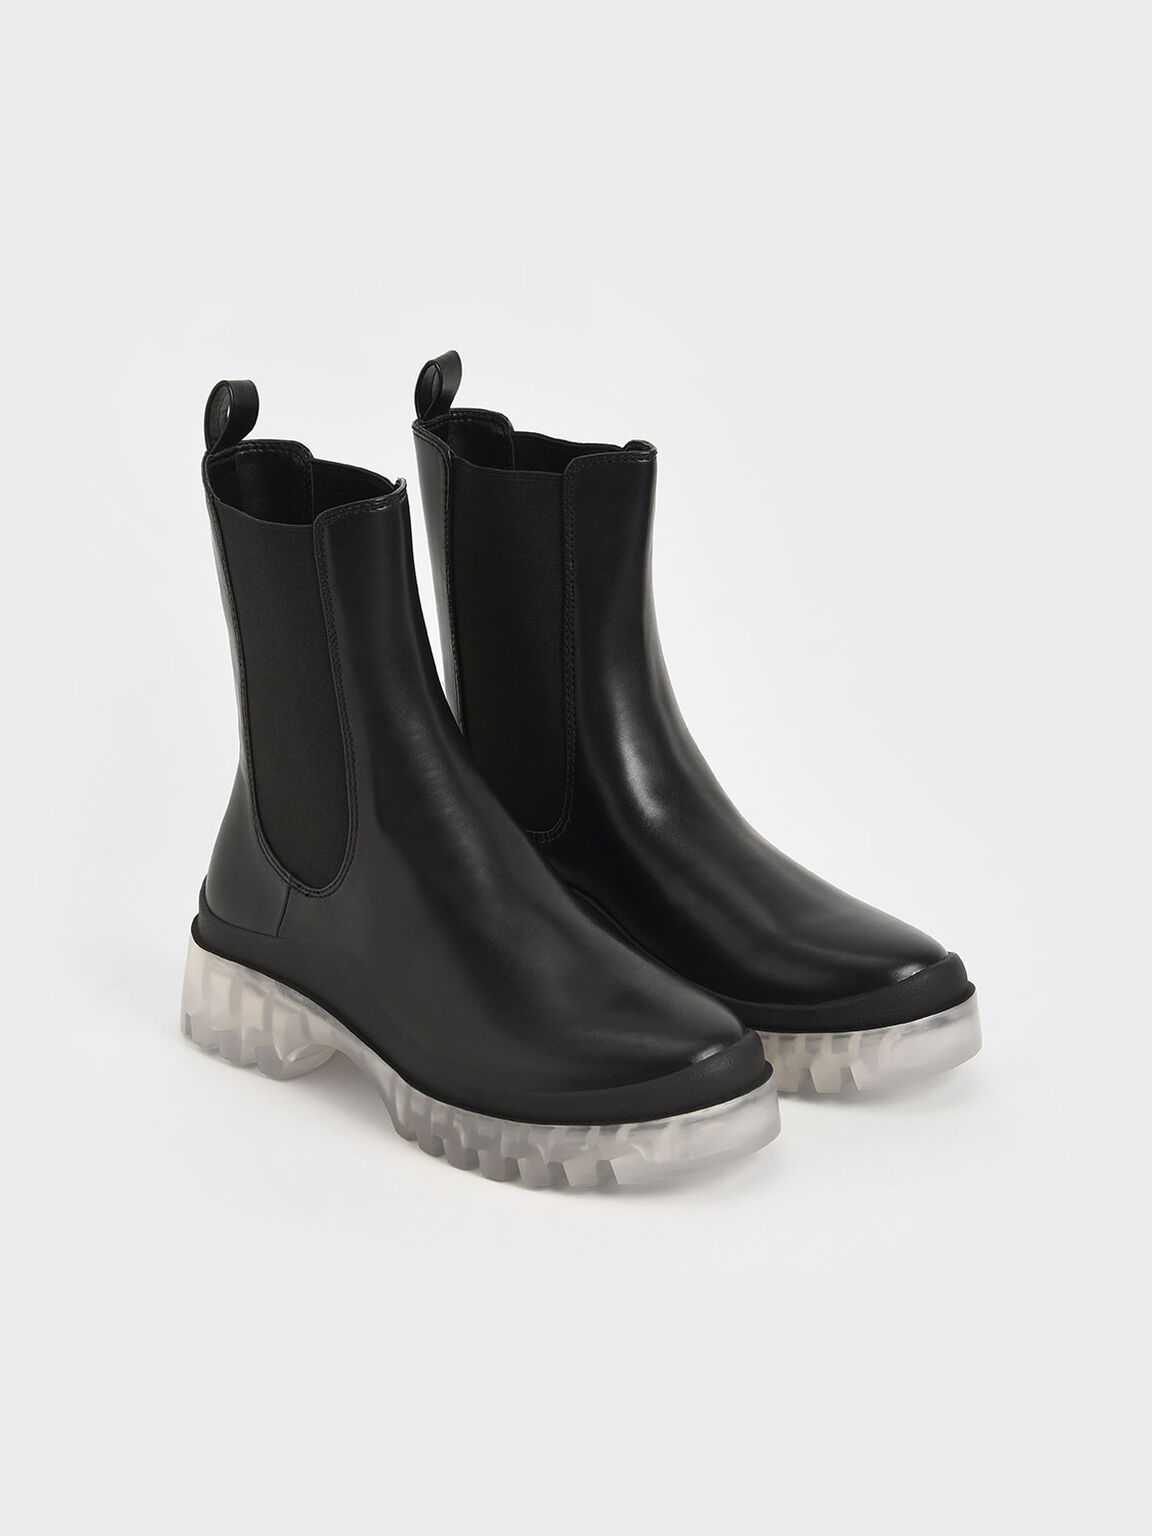 Clear Sole Chelsea Boots, Black, hi-res